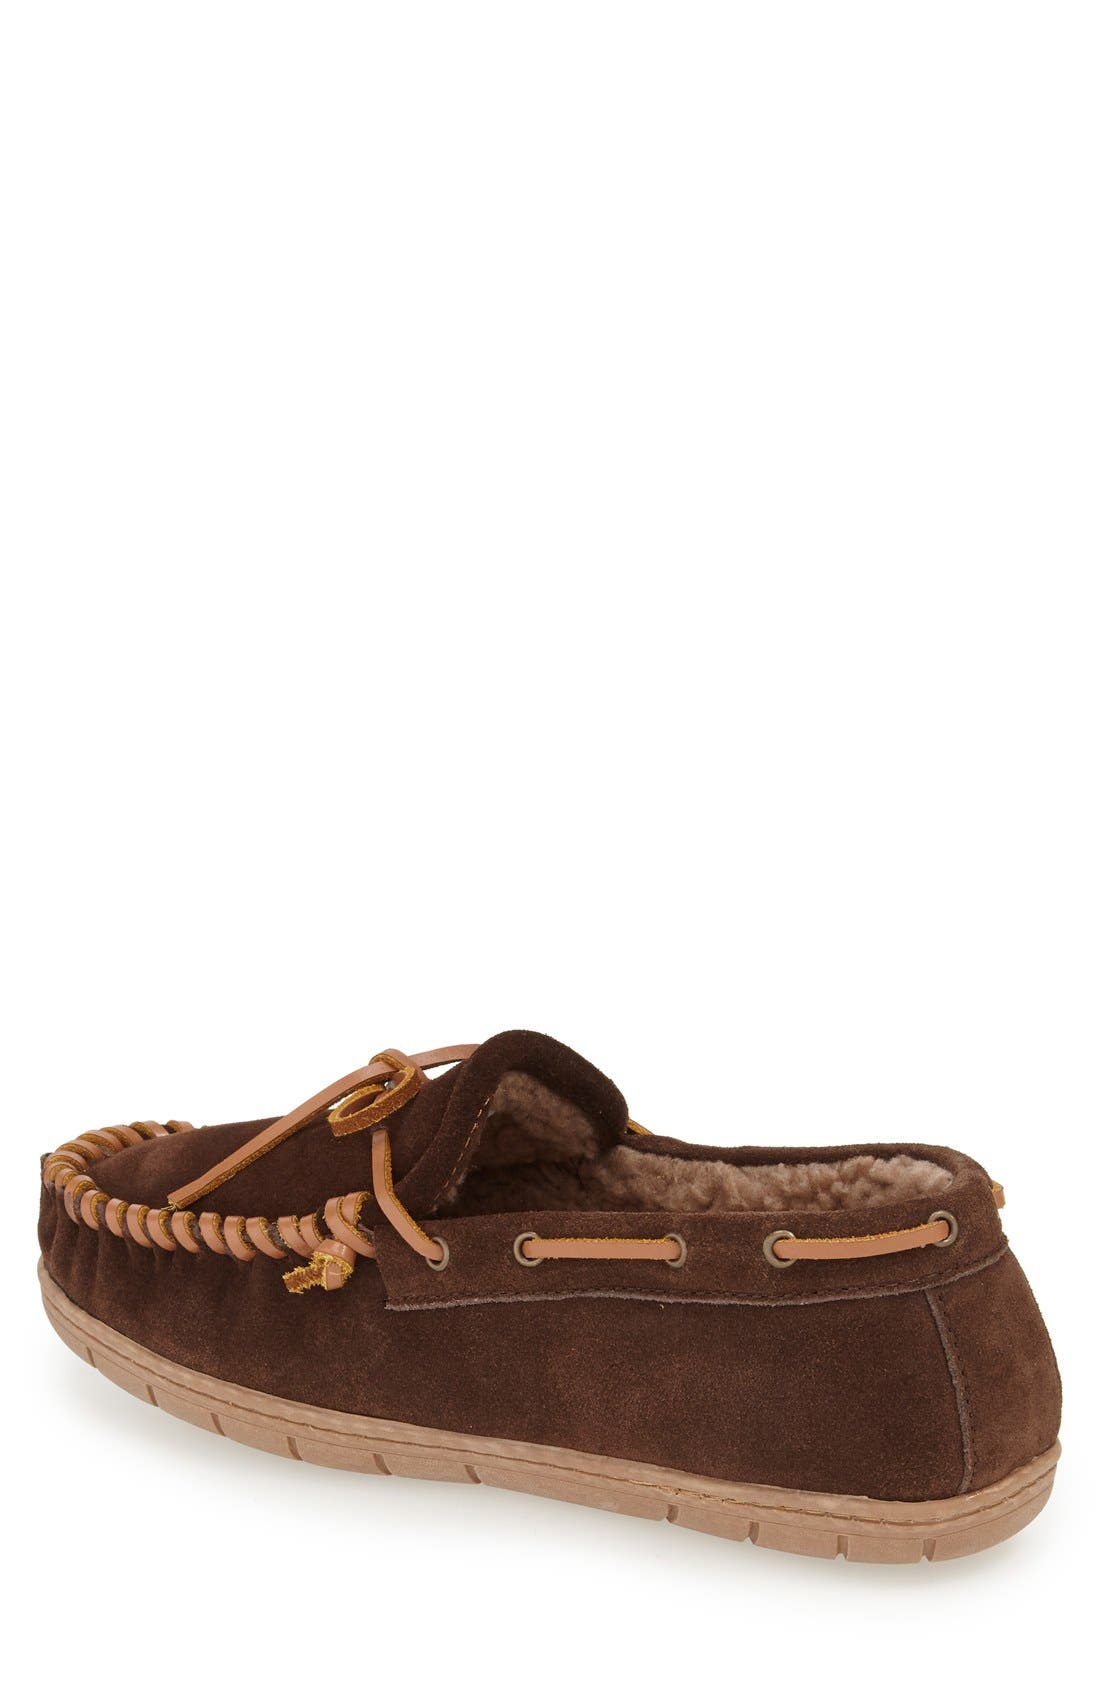 'Courier' Moccasin Slipper,                             Alternate thumbnail 2, color,                             Chocolate Suede